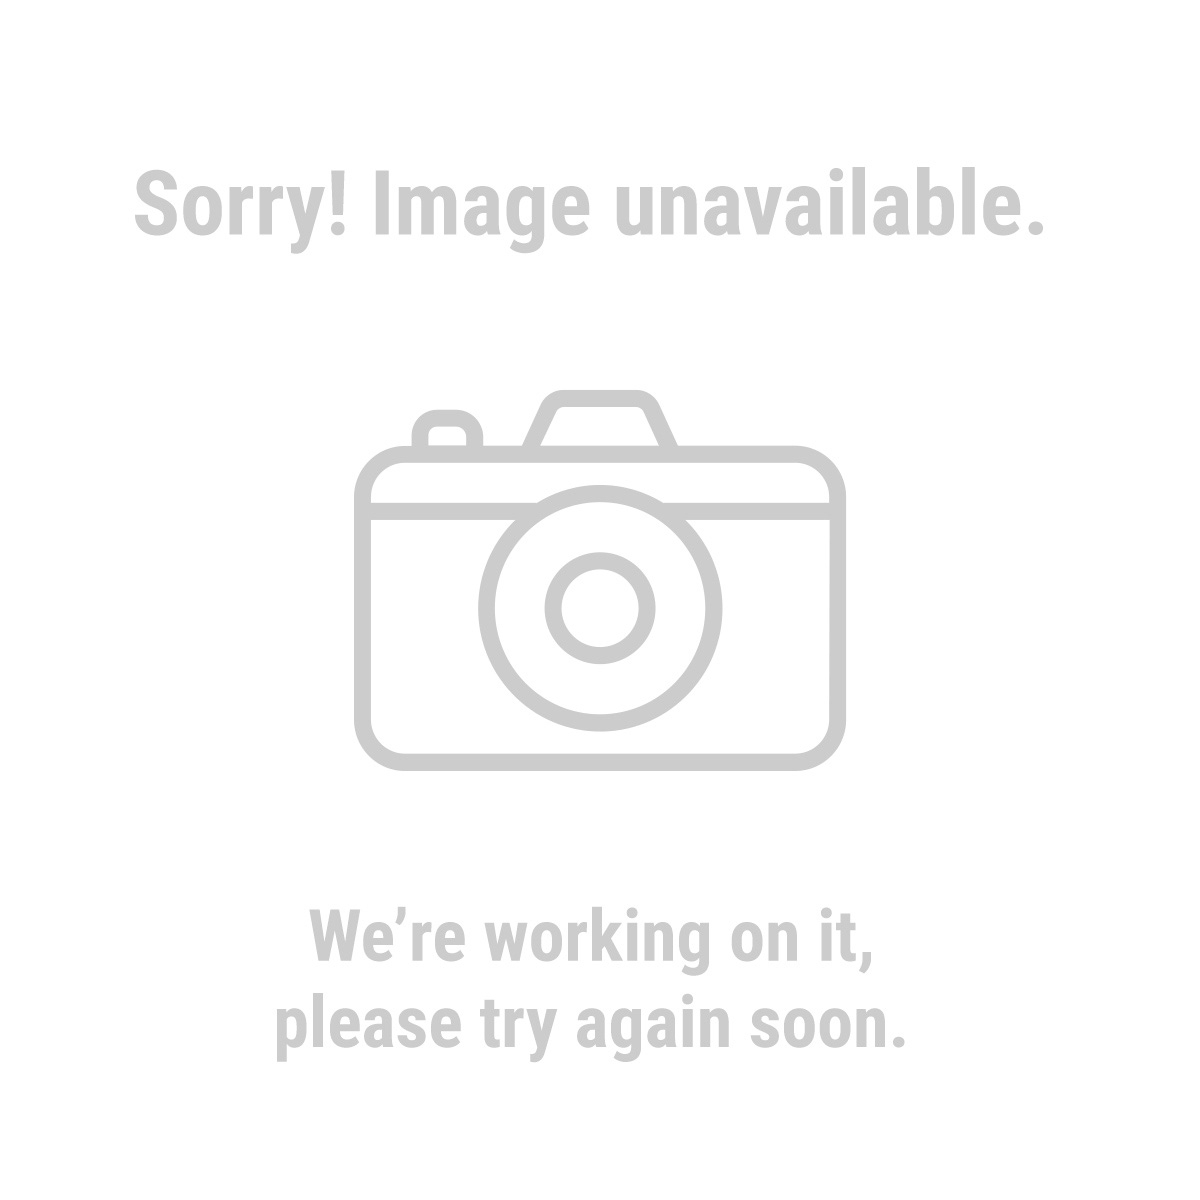 Pittsburgh 67011 3 Piece Square Drive Socket Caps